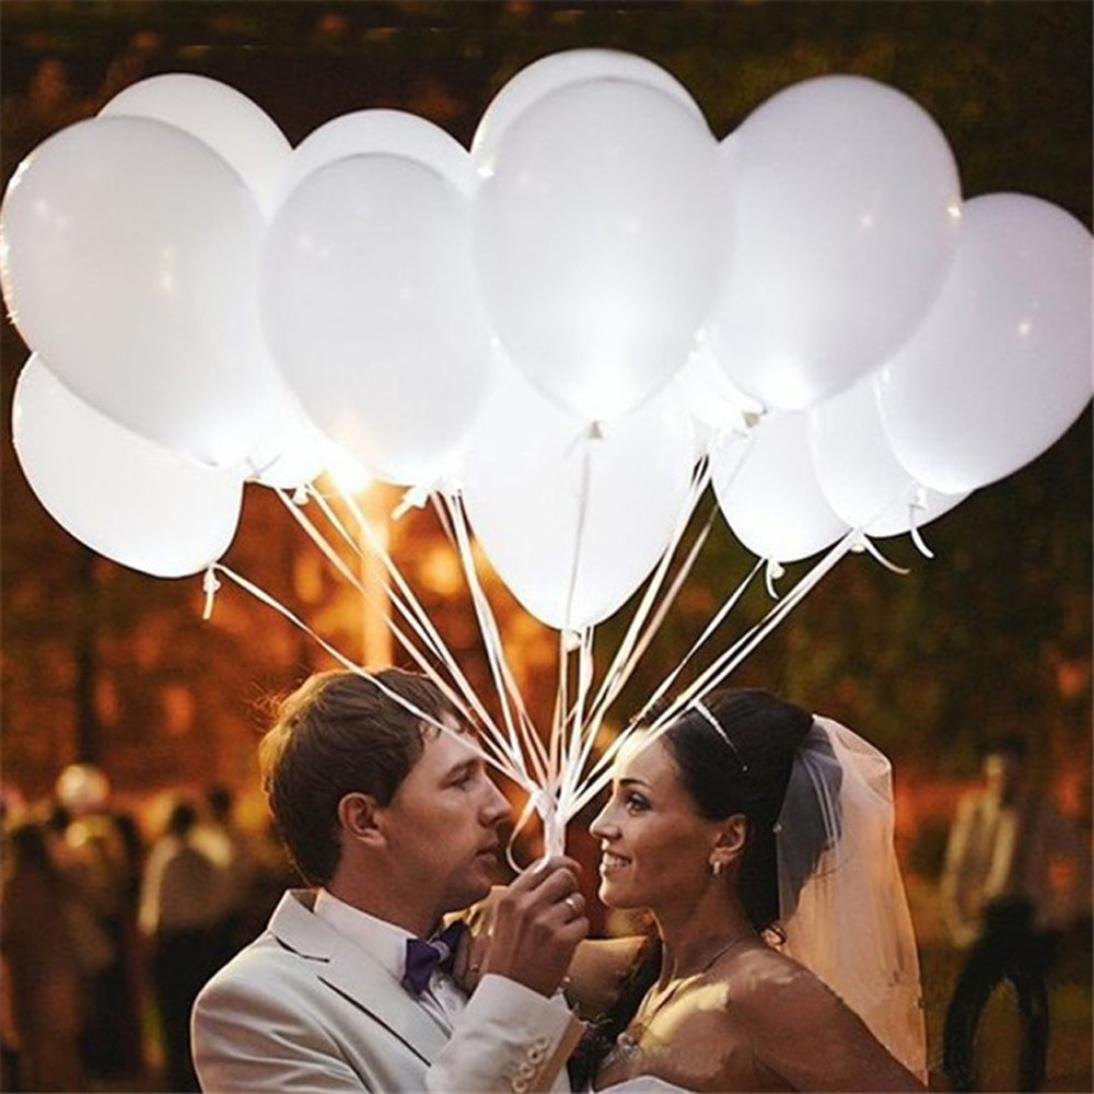 Gbell 12Inch Pearl White Glow LED Balloons- 20PC/30PC/50PC Flash Light Ball Lamp Lantern Cocktail Evening Party Decor- Wedding Birthday Party Supplies and Decorations (50 PC)